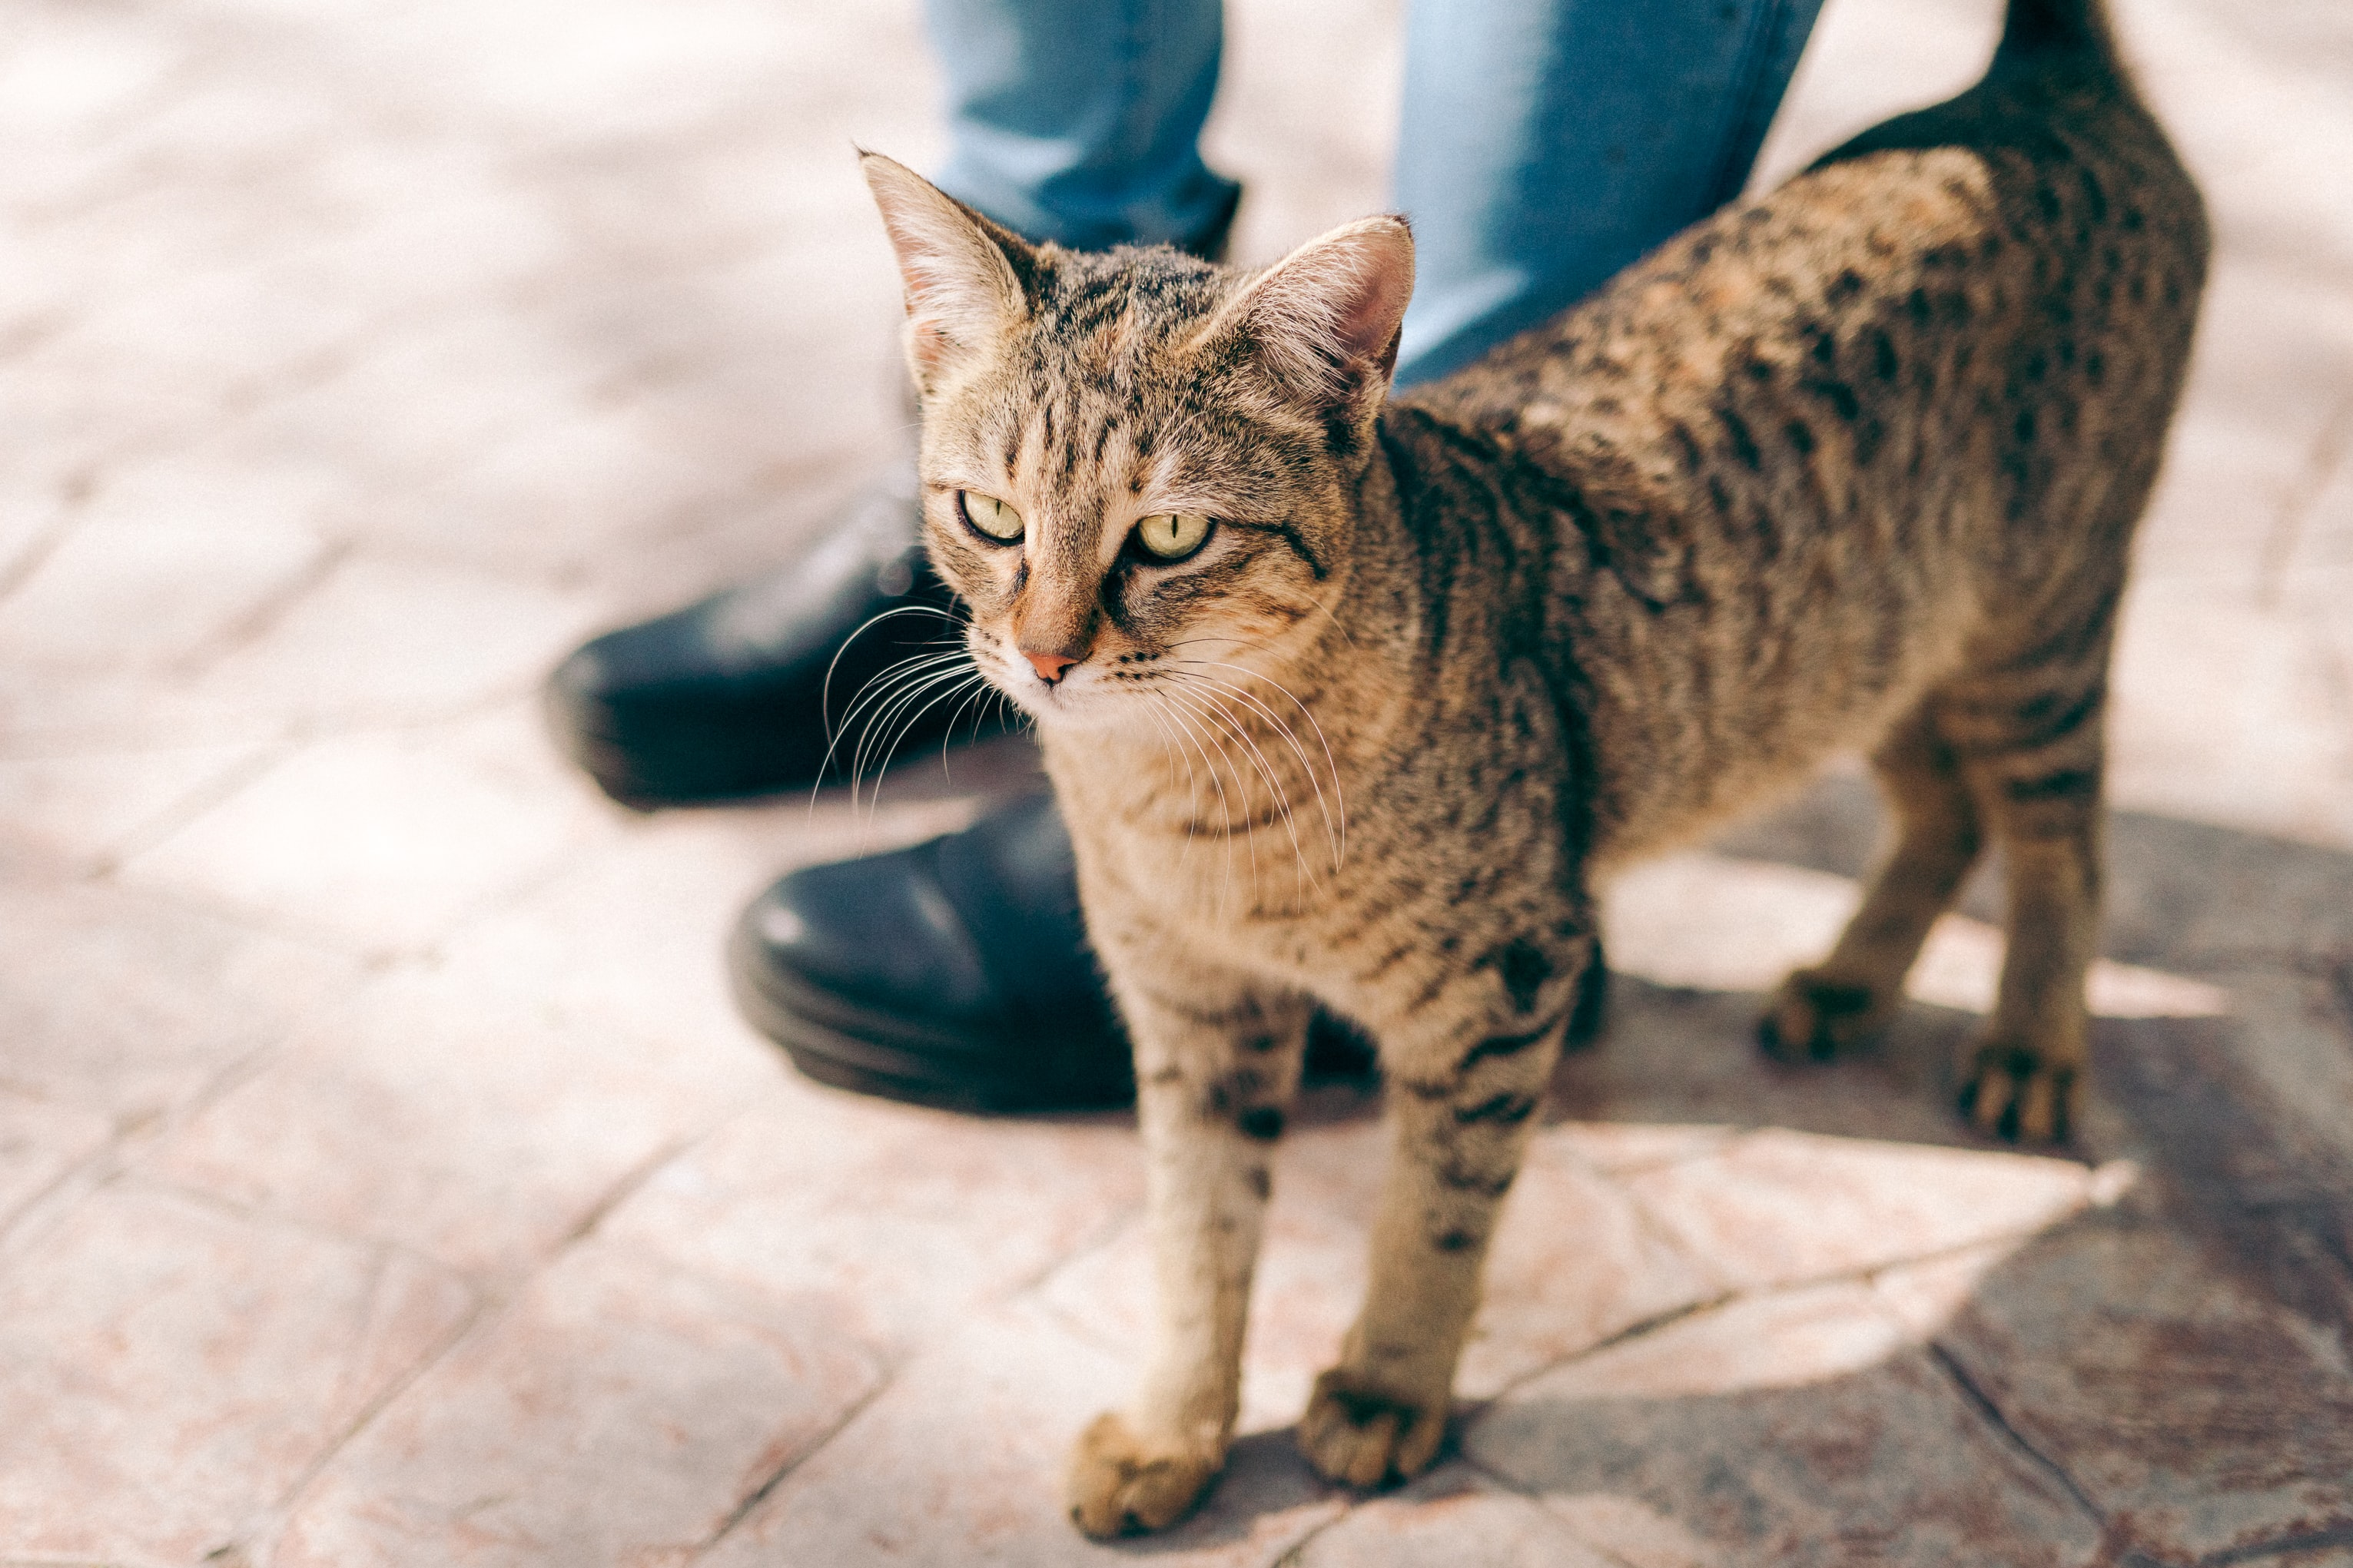 brown tabby cat standing beside person